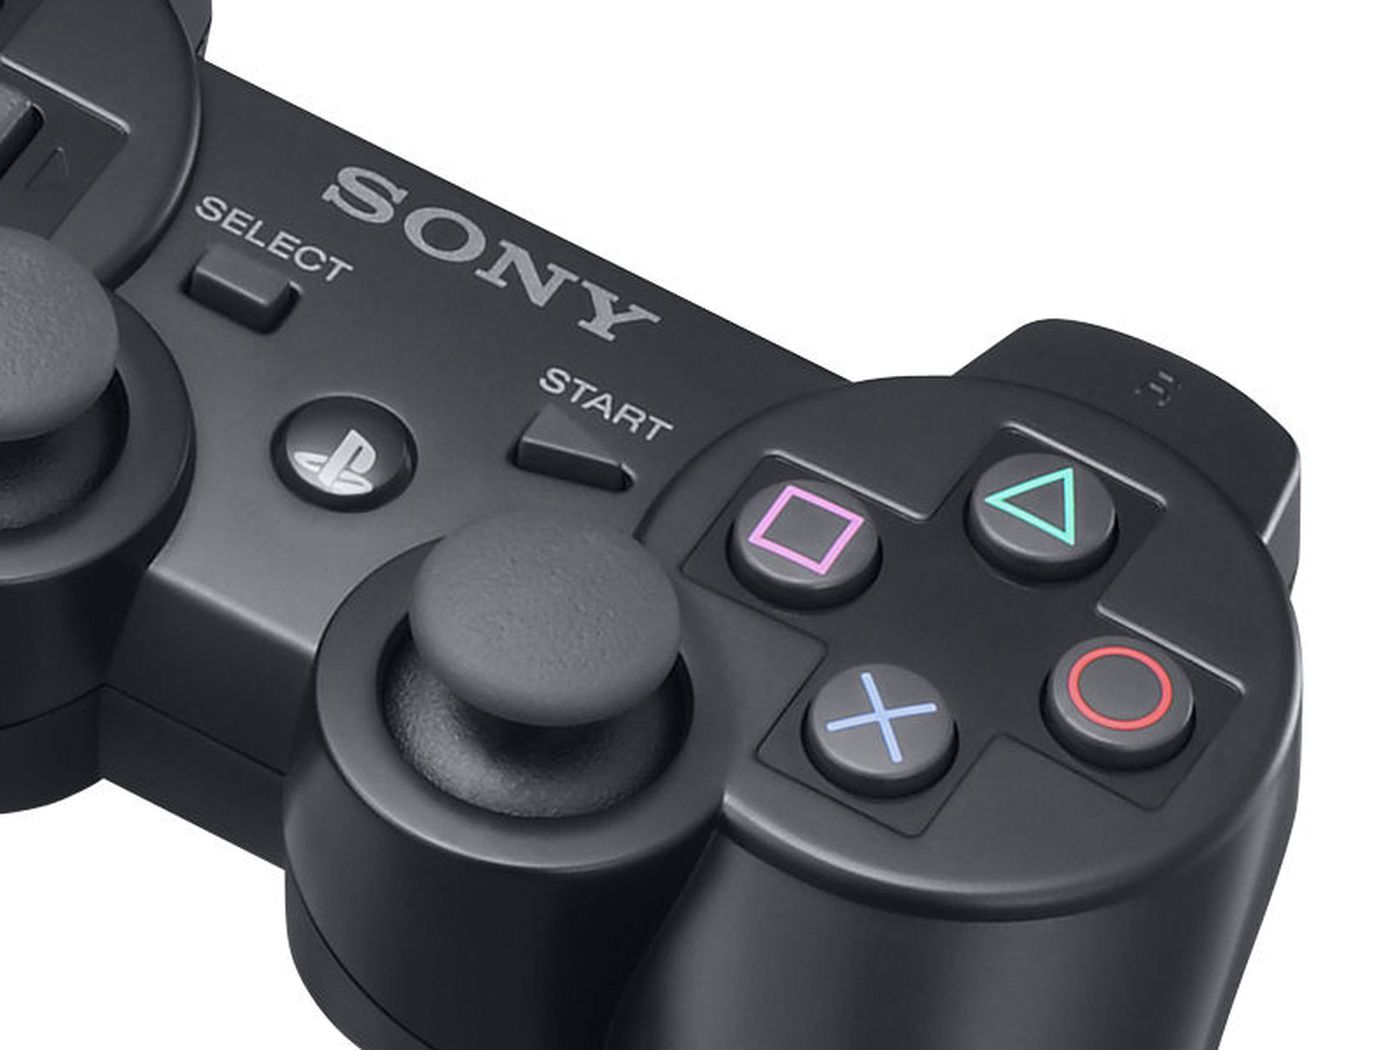 PlayStation 4 'Orbis' chipset based on current-gen AMD A8 CPU and